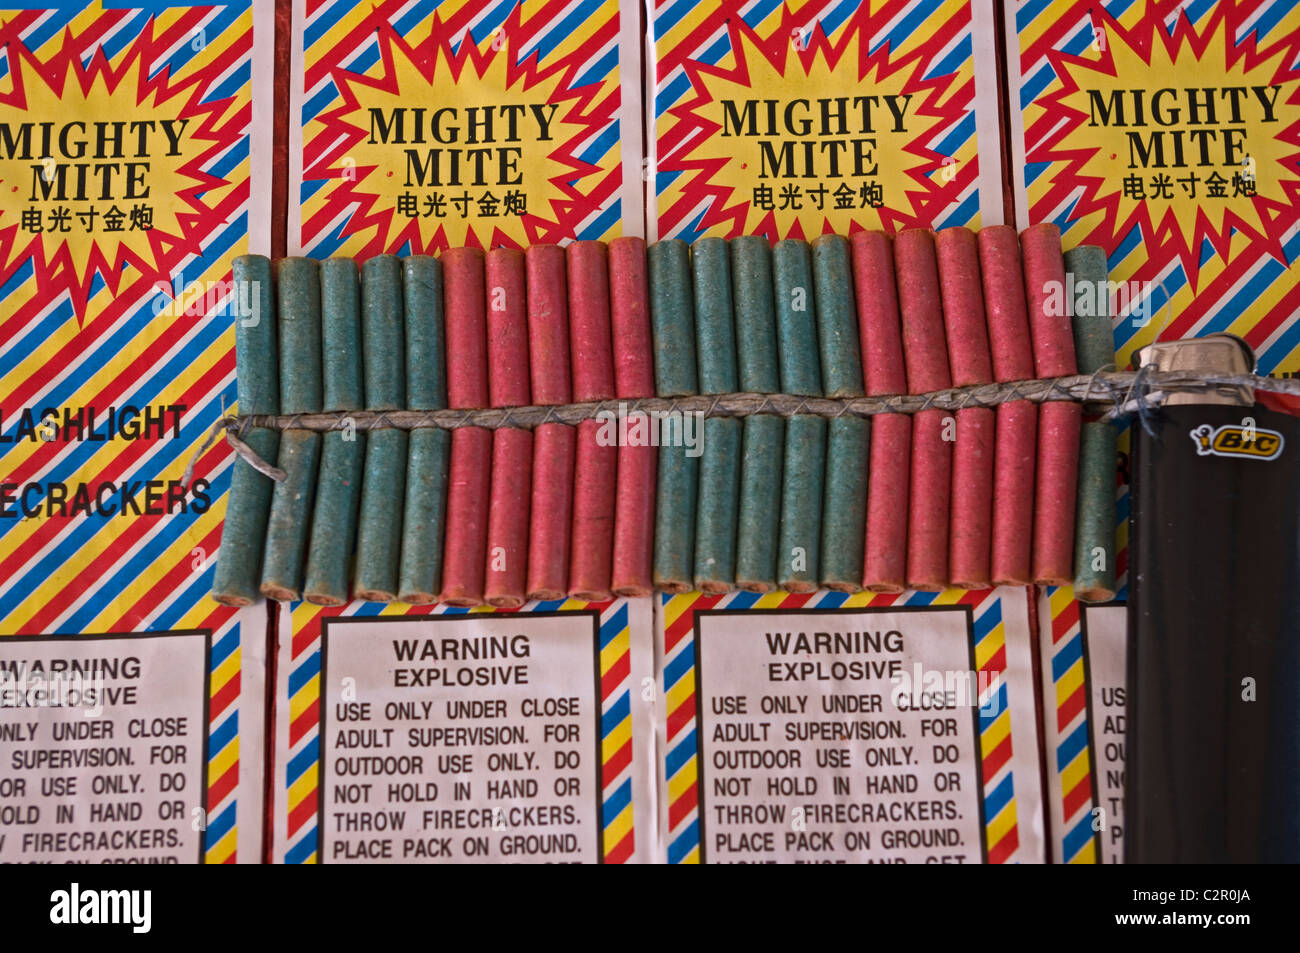 mighty mite, fire cracker, bic lighter - Stock Image